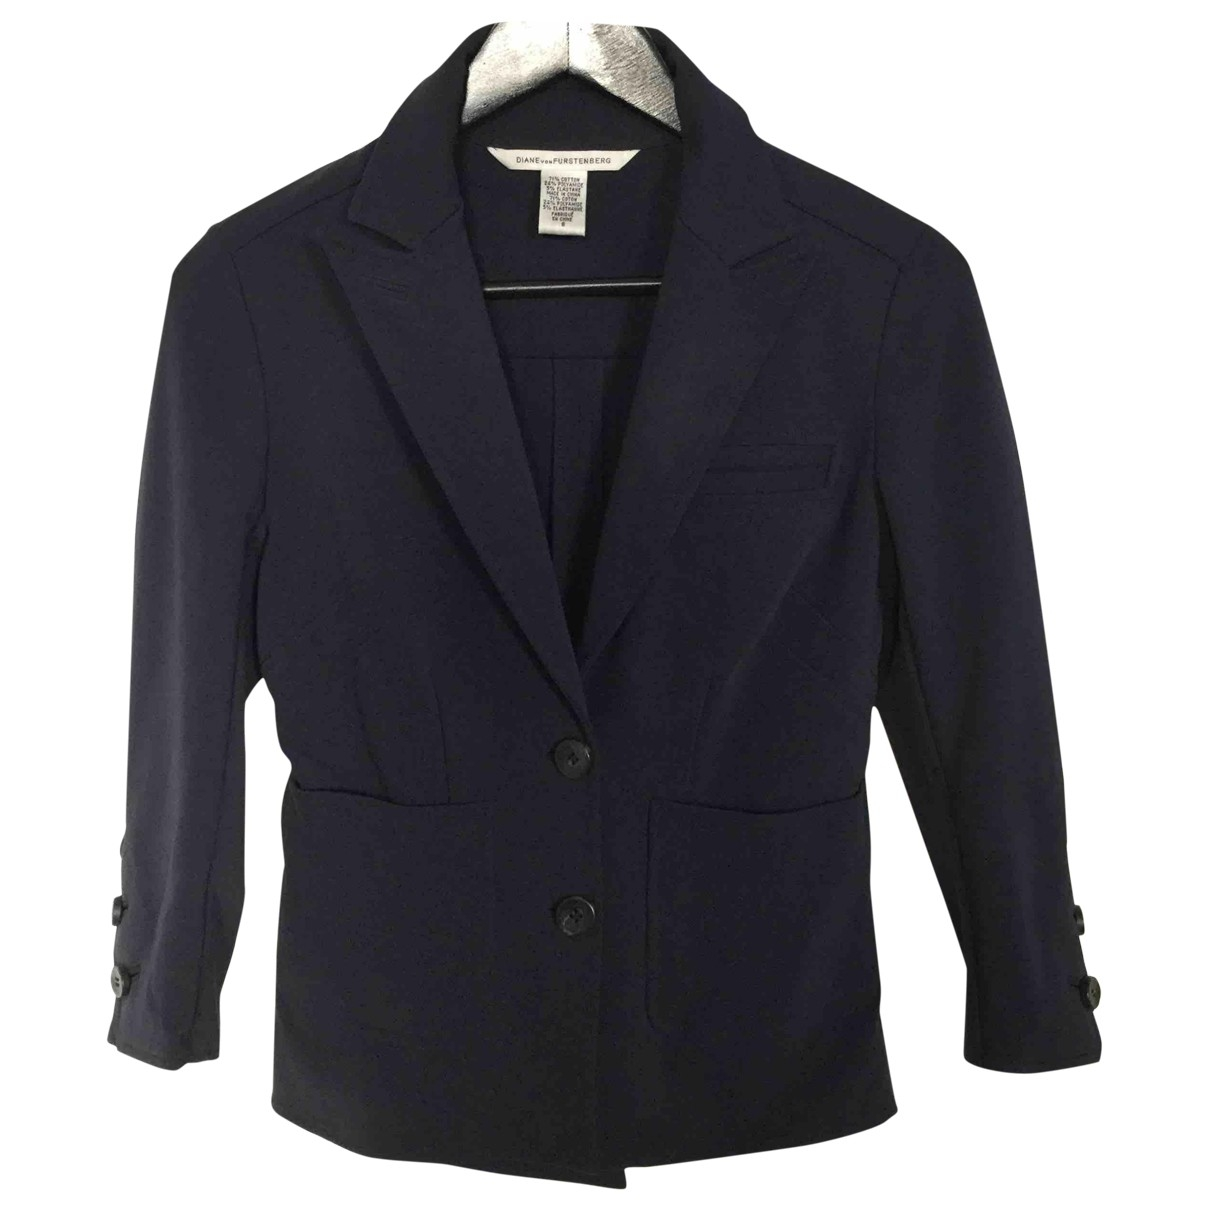 Diane Von Furstenberg \N Navy Cotton jacket for Women 6 US